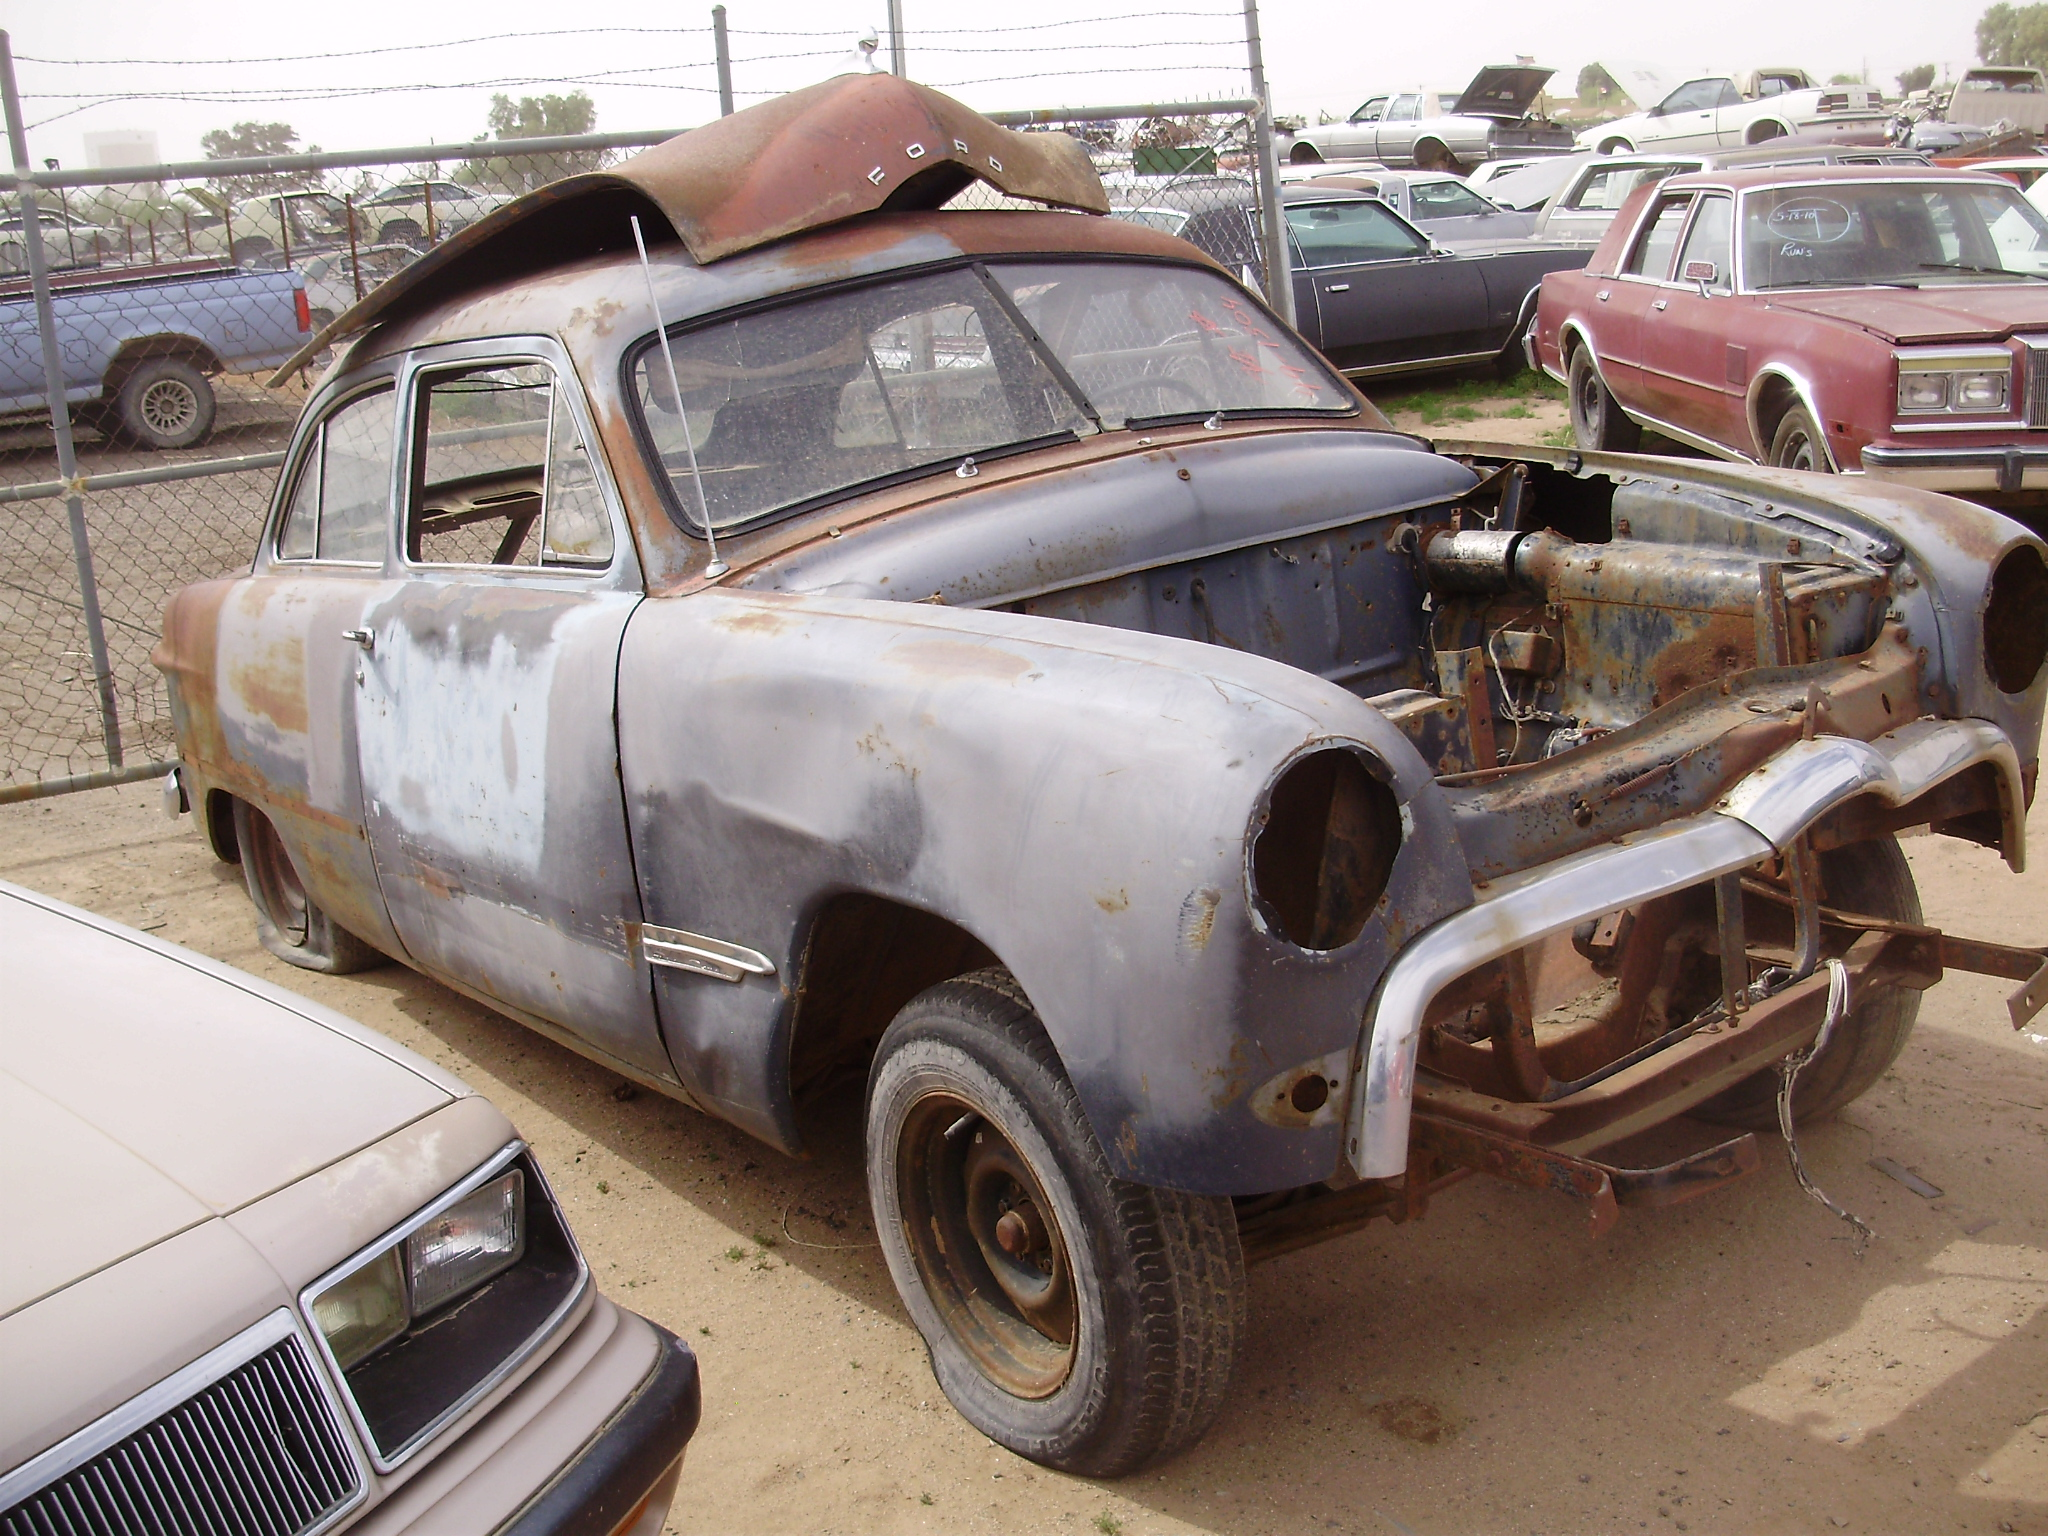 1949 Ford Ford Car (#49FO1309C) | Desert Valley Auto Parts - photo#2